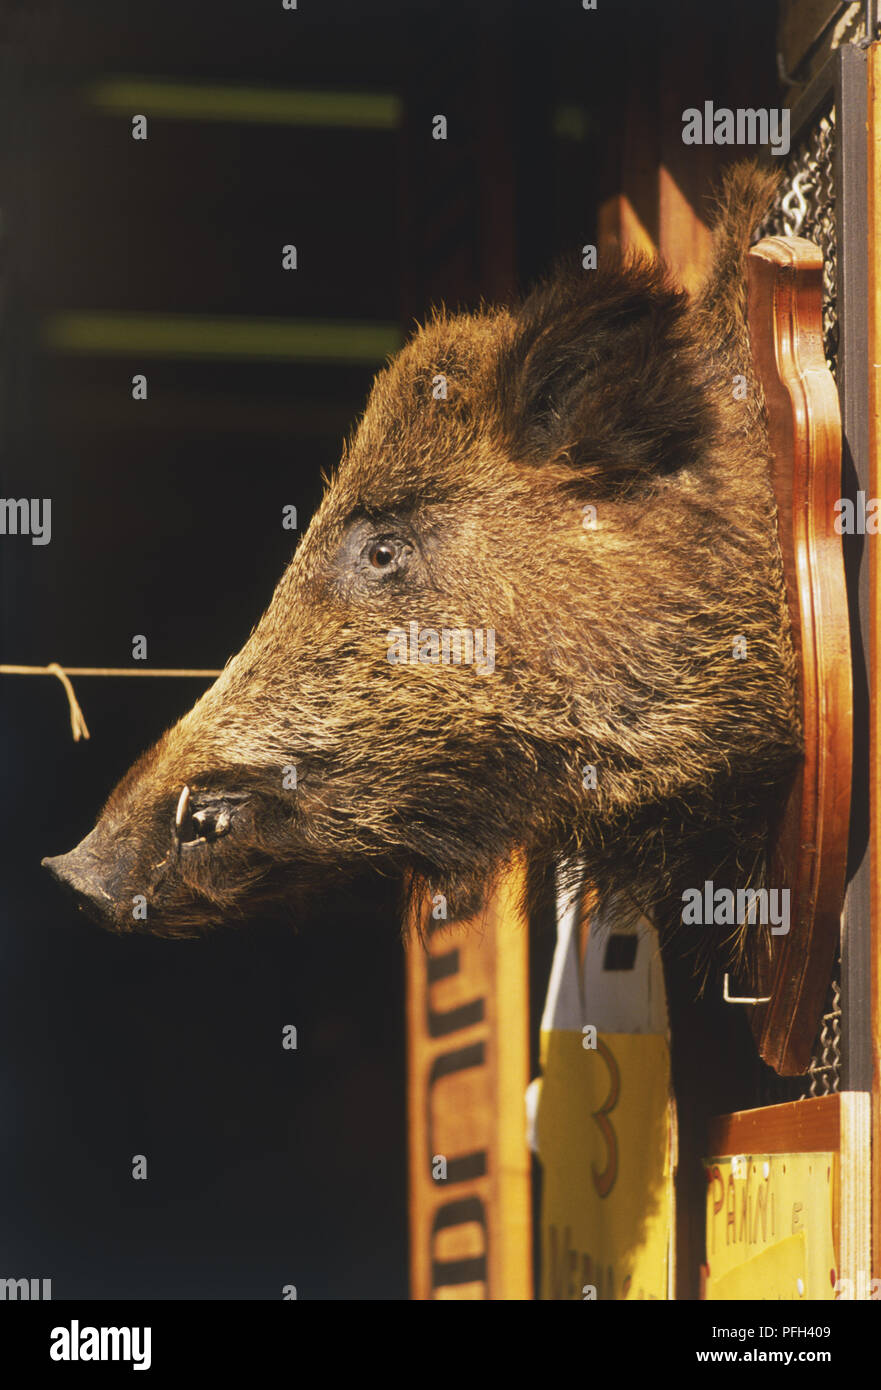 Italy, Central Tuscany, Chianti, boar's head on polished wood plaque at entrance to store, profile view - Stock Image